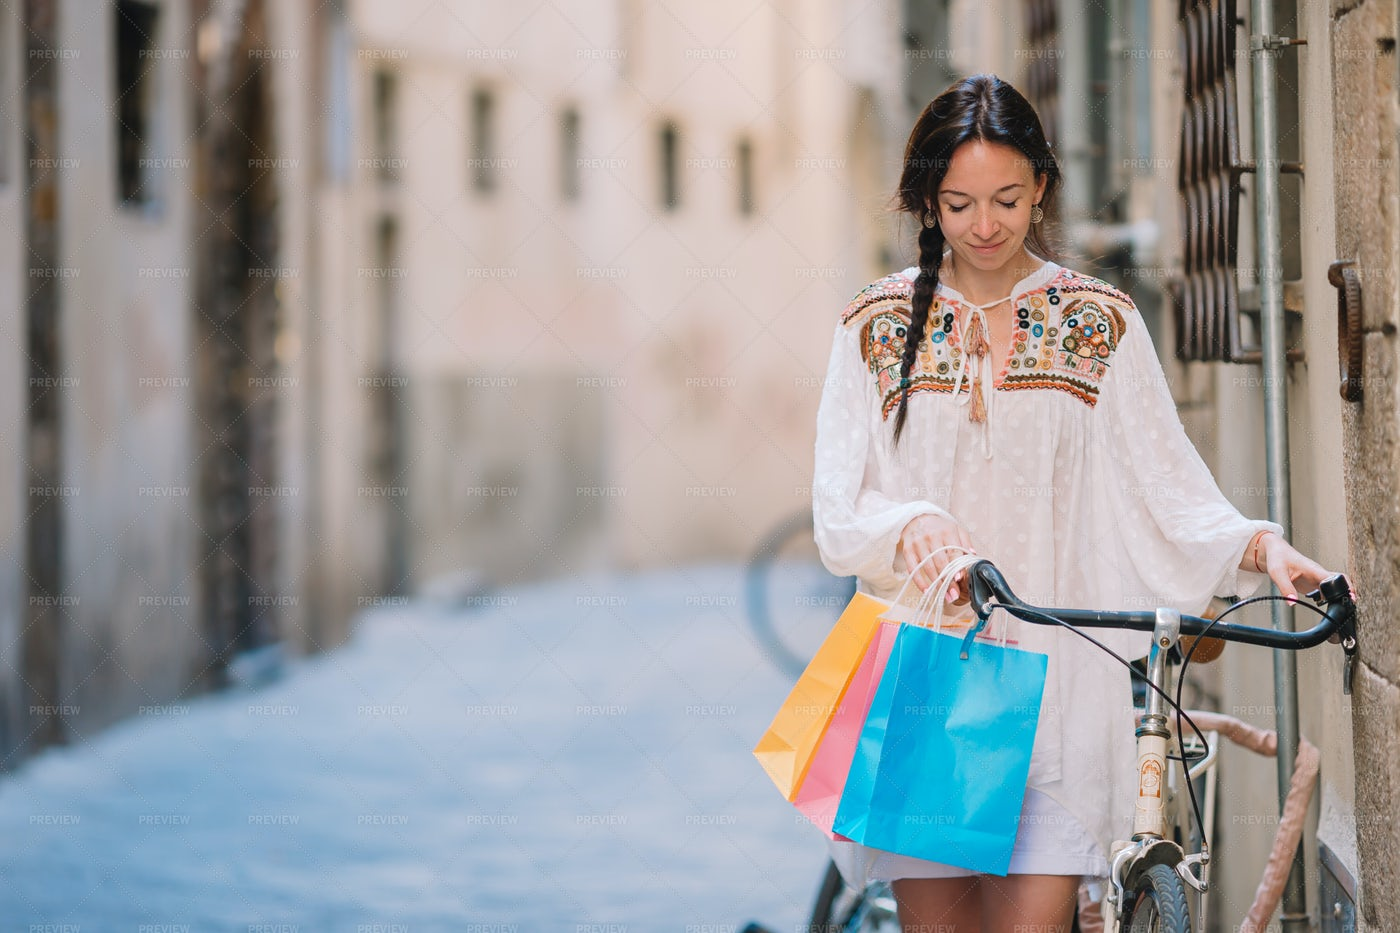 Woman With Bike And Bags: Stock Photos